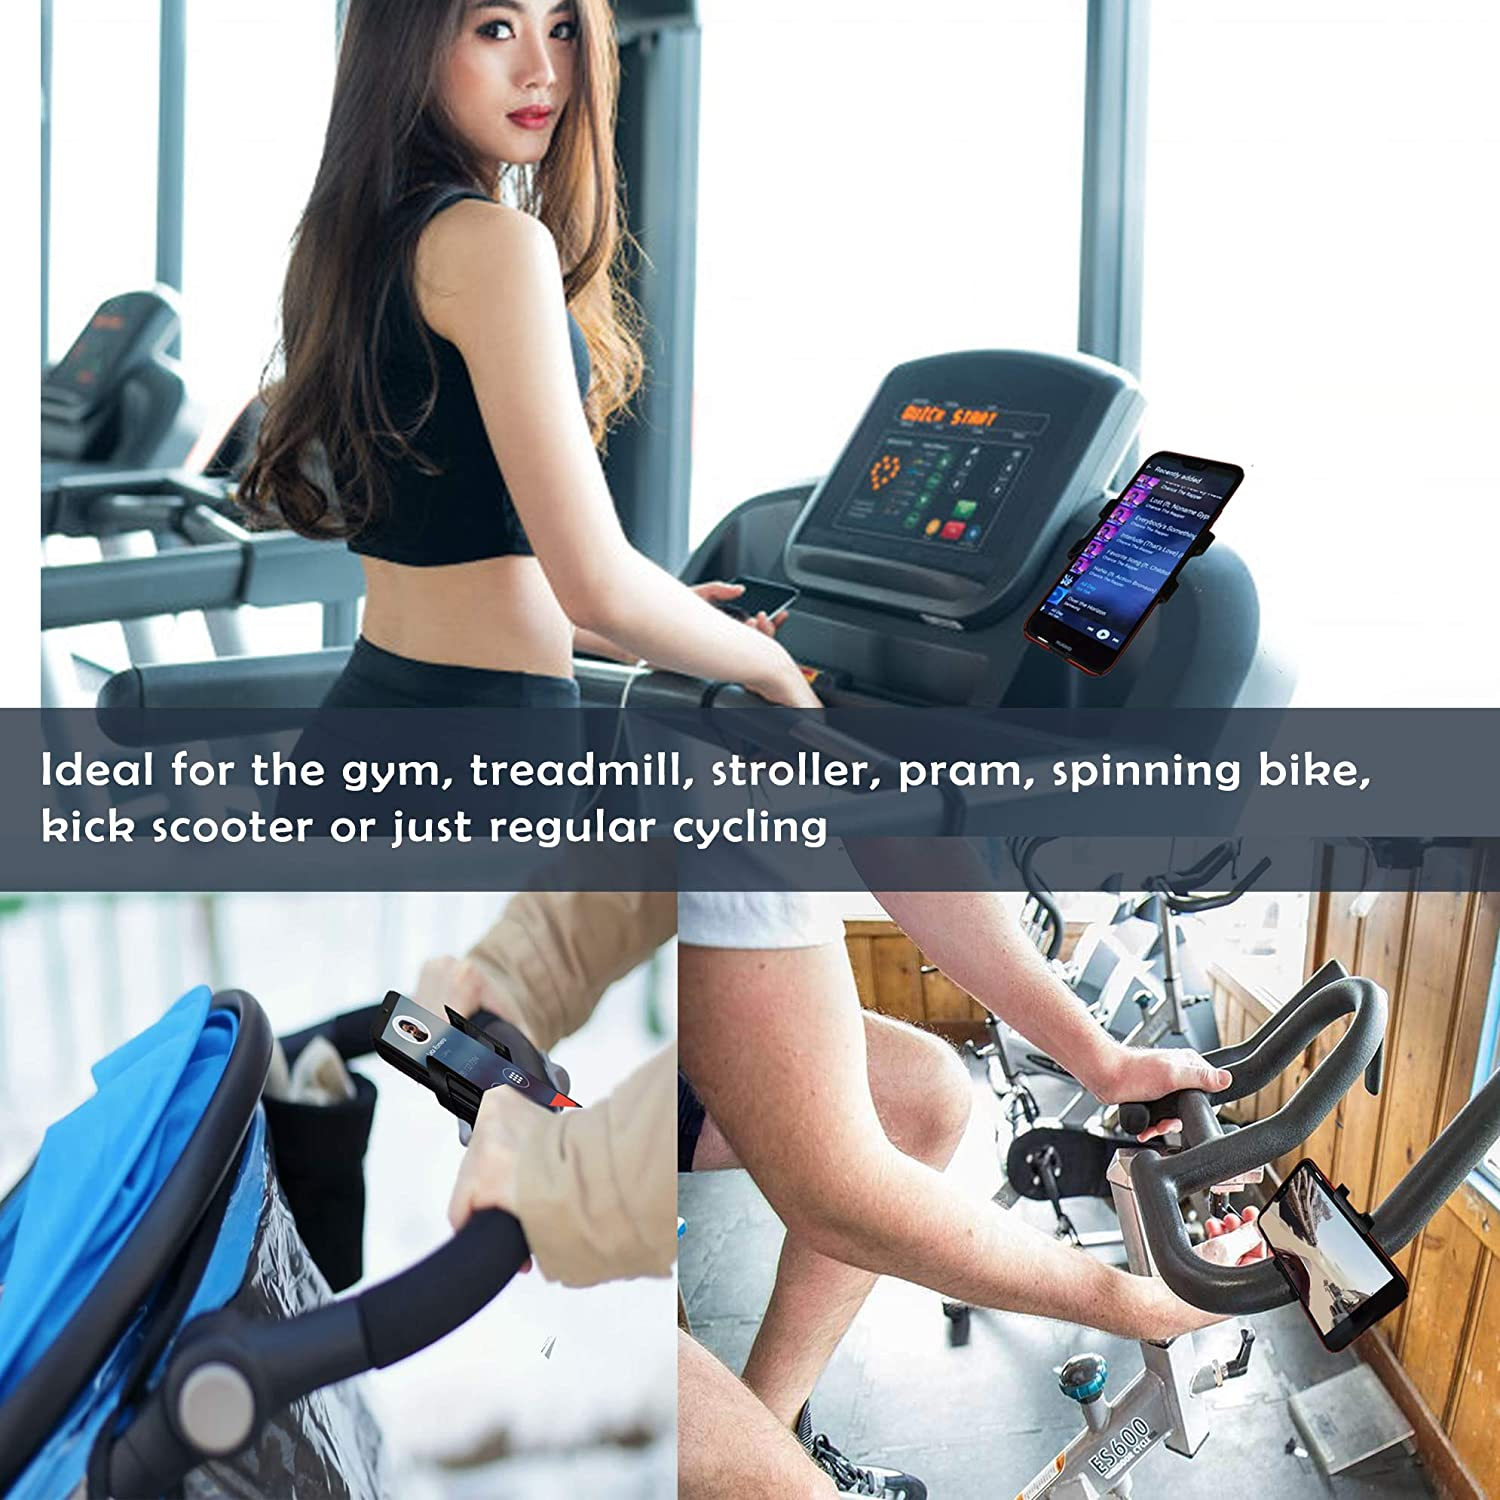 8//8Plus 6S//6S Plus Samsung Galaxy 7//7Plus VEGAMONT Bike Phone Mount Any Phone Up to 6.5 to 3.5 Wide-360 Rotation Adjustable for iPhone X S8 XS XR S9 S7 LG